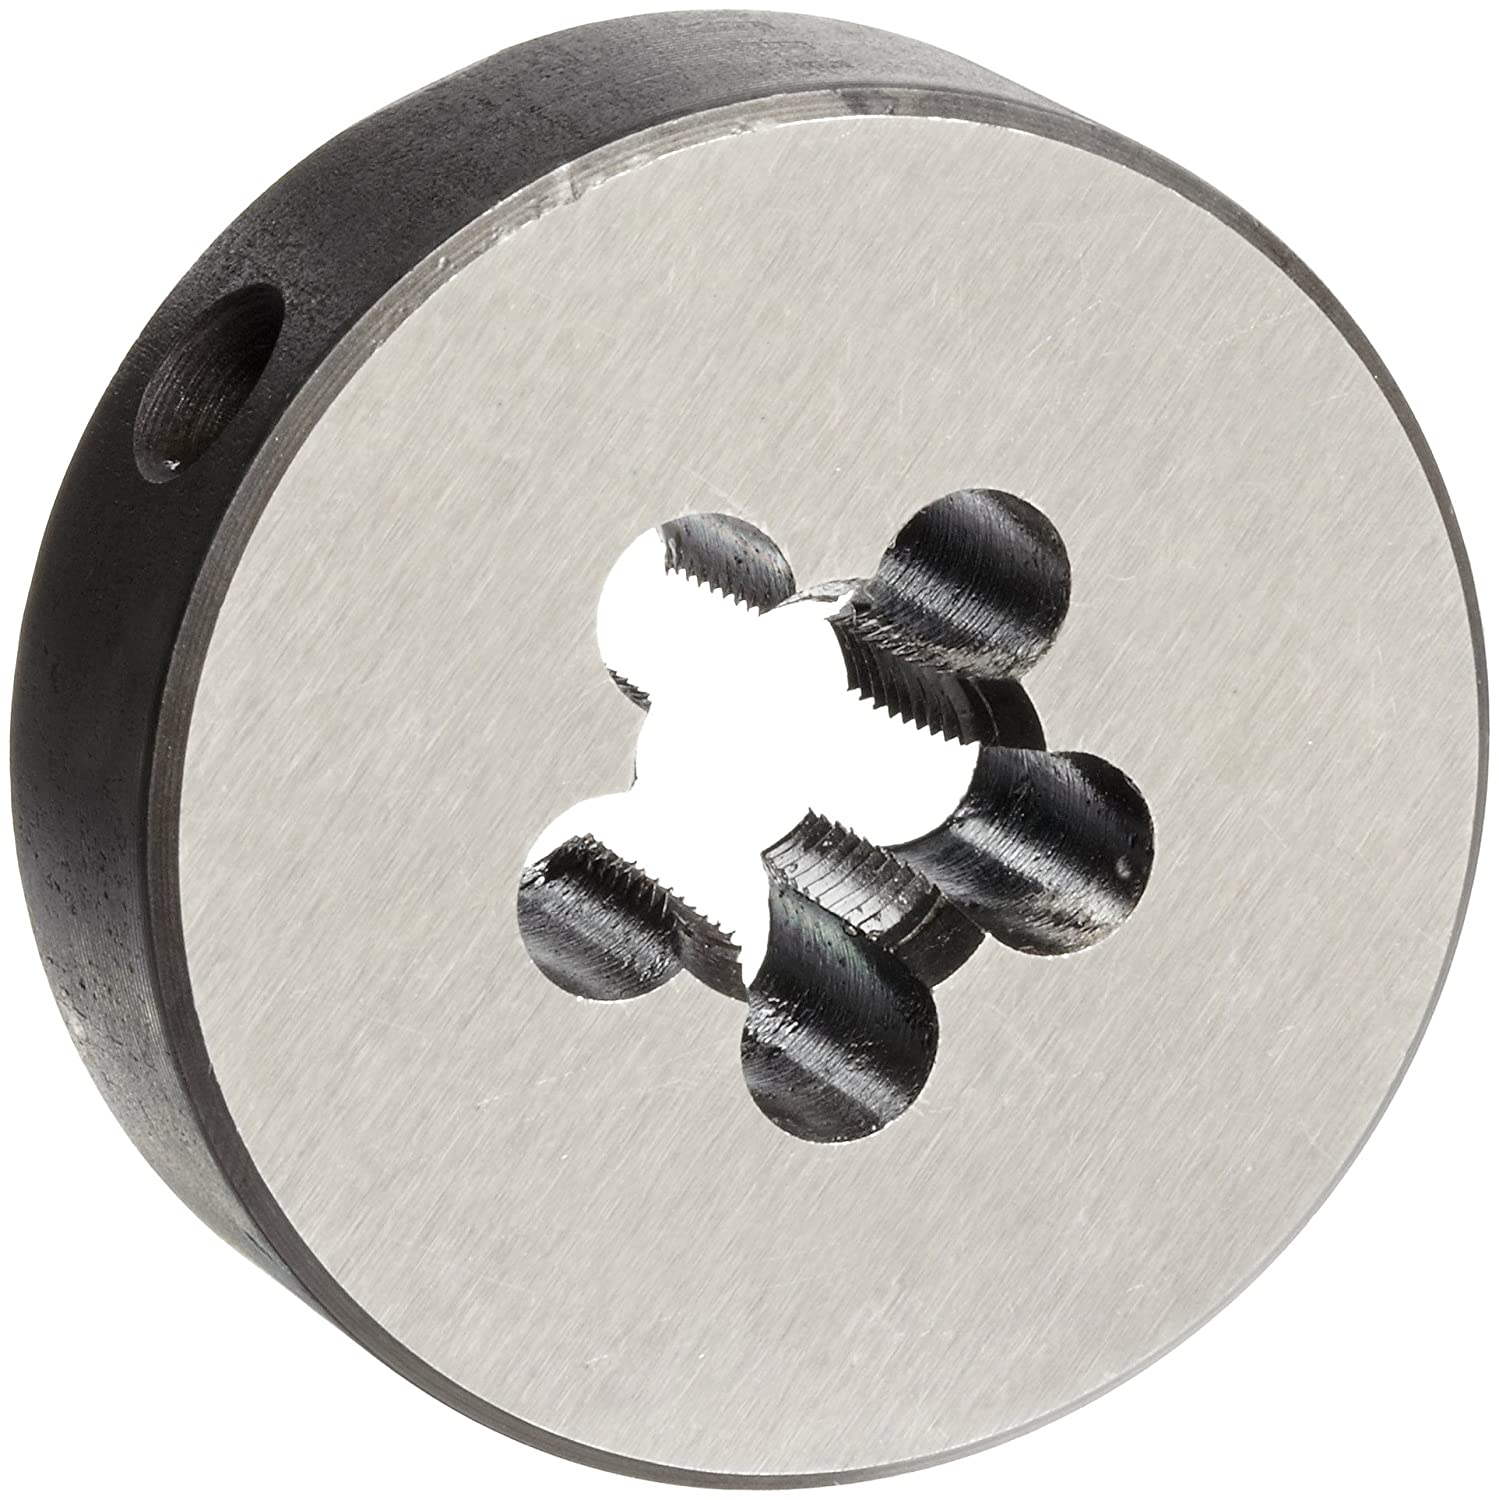 Union Butterfield 2010(NPT) Carbon Steel Round Threading Die, Uncoated (Bright) Finish, 1/8